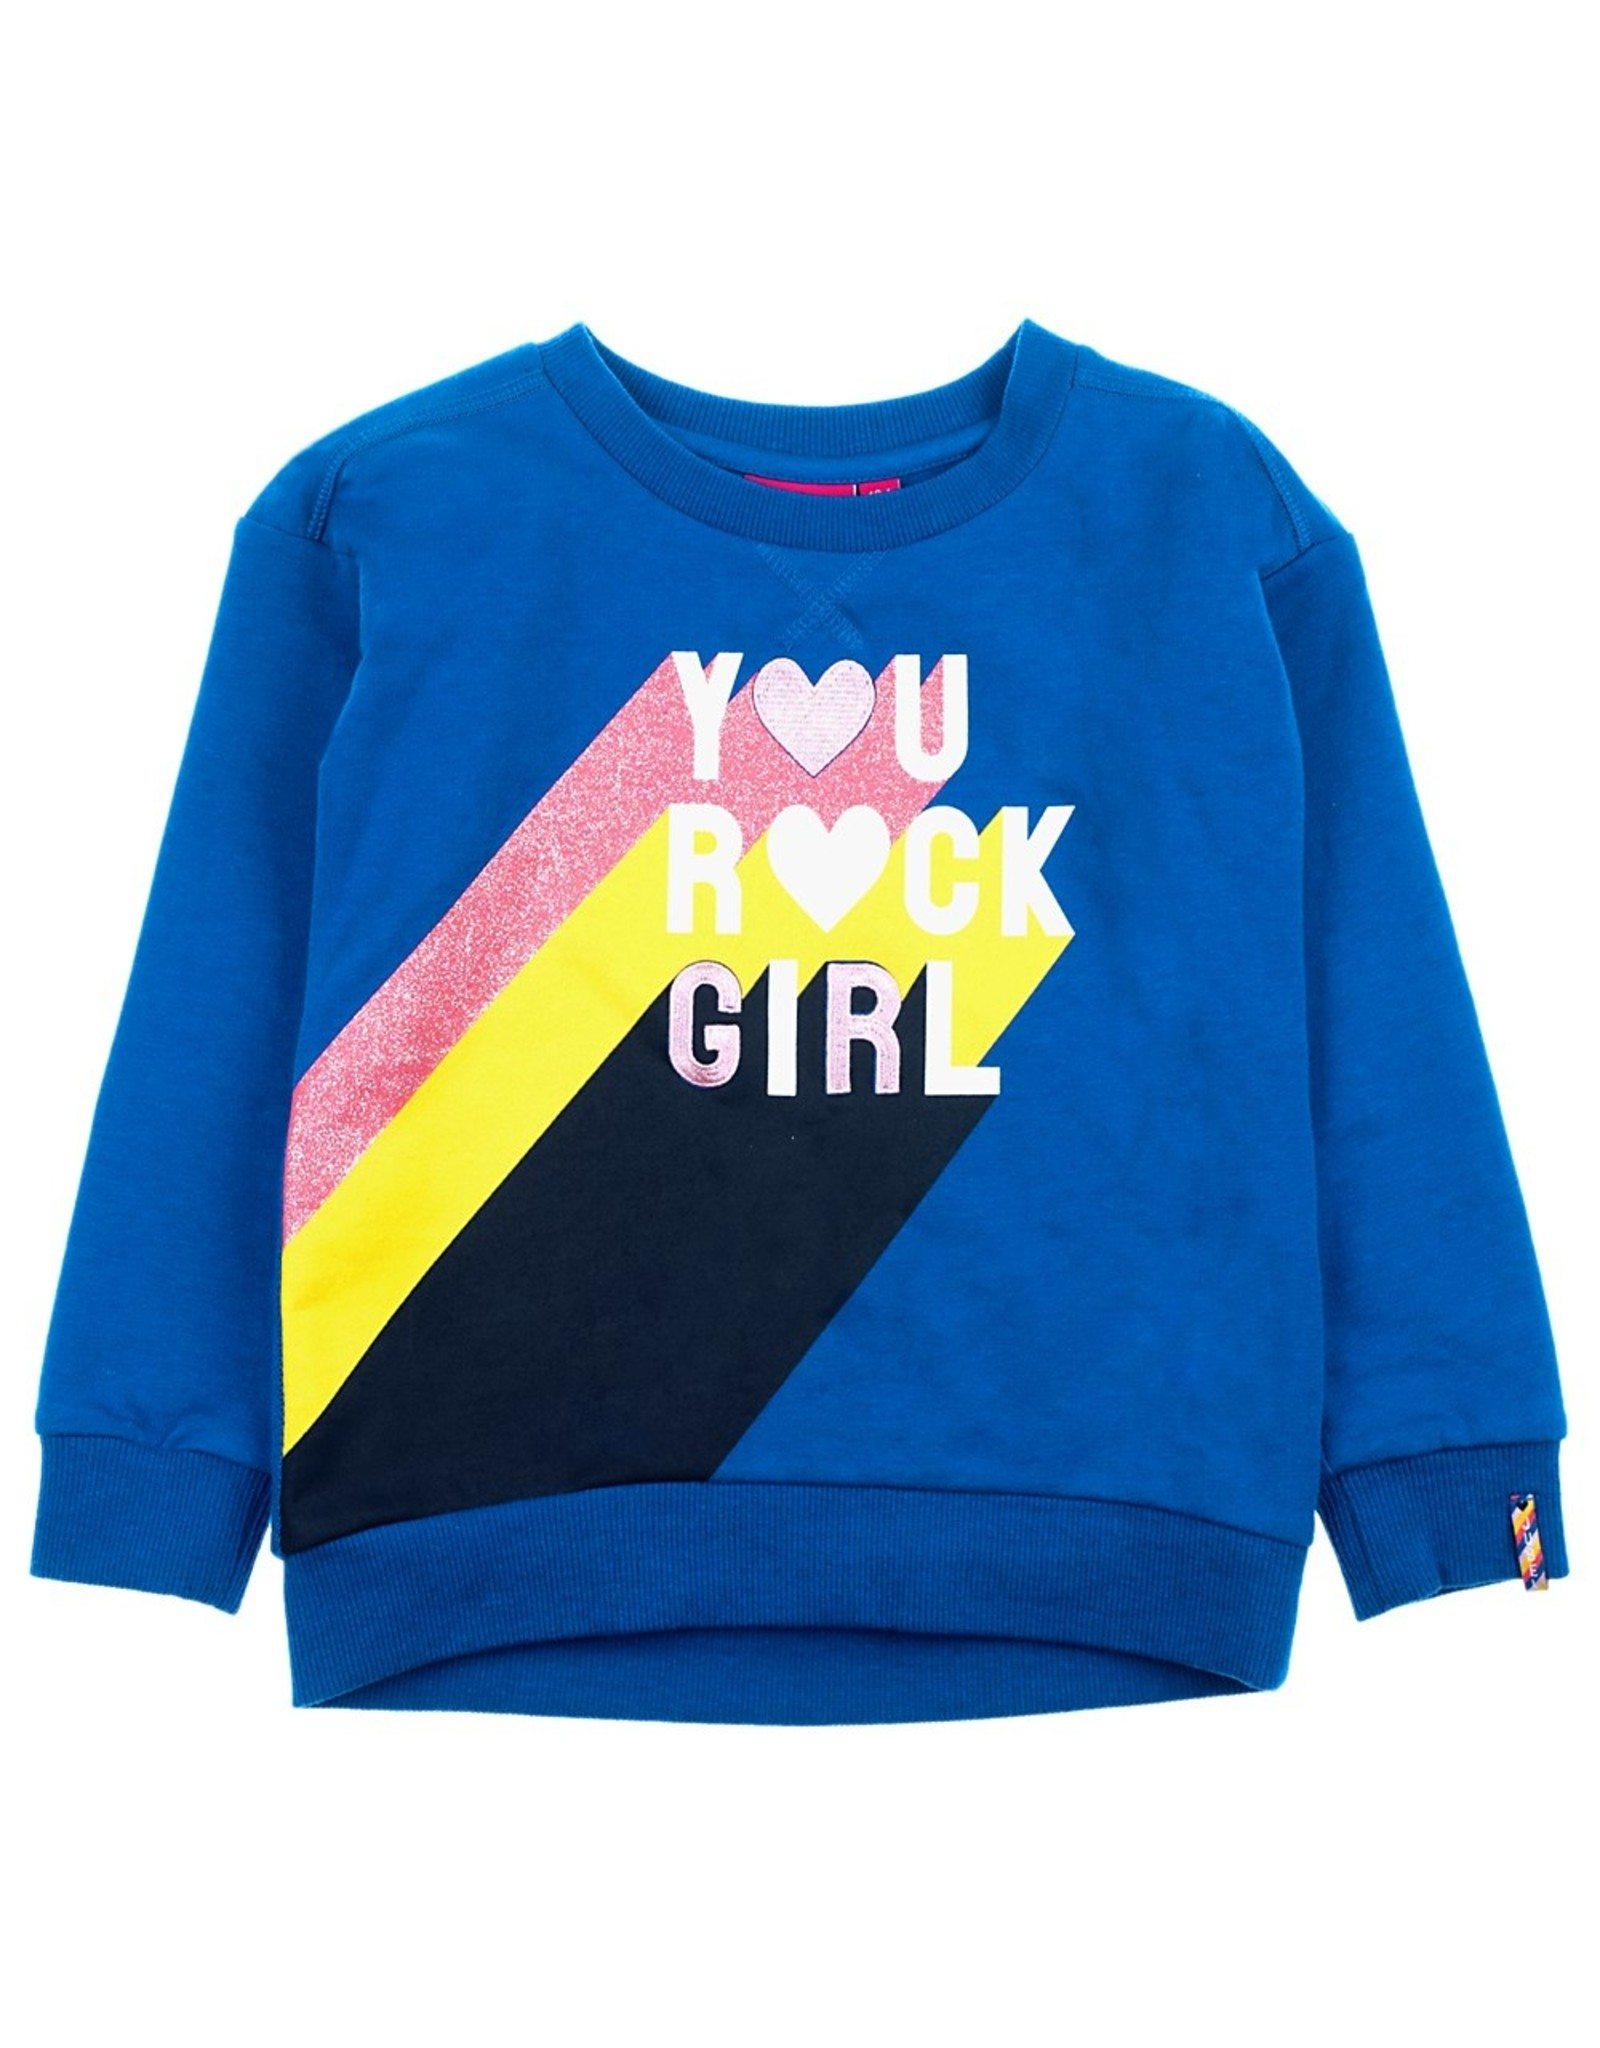 Jubel Sweater You Rock - Pret-A-Party